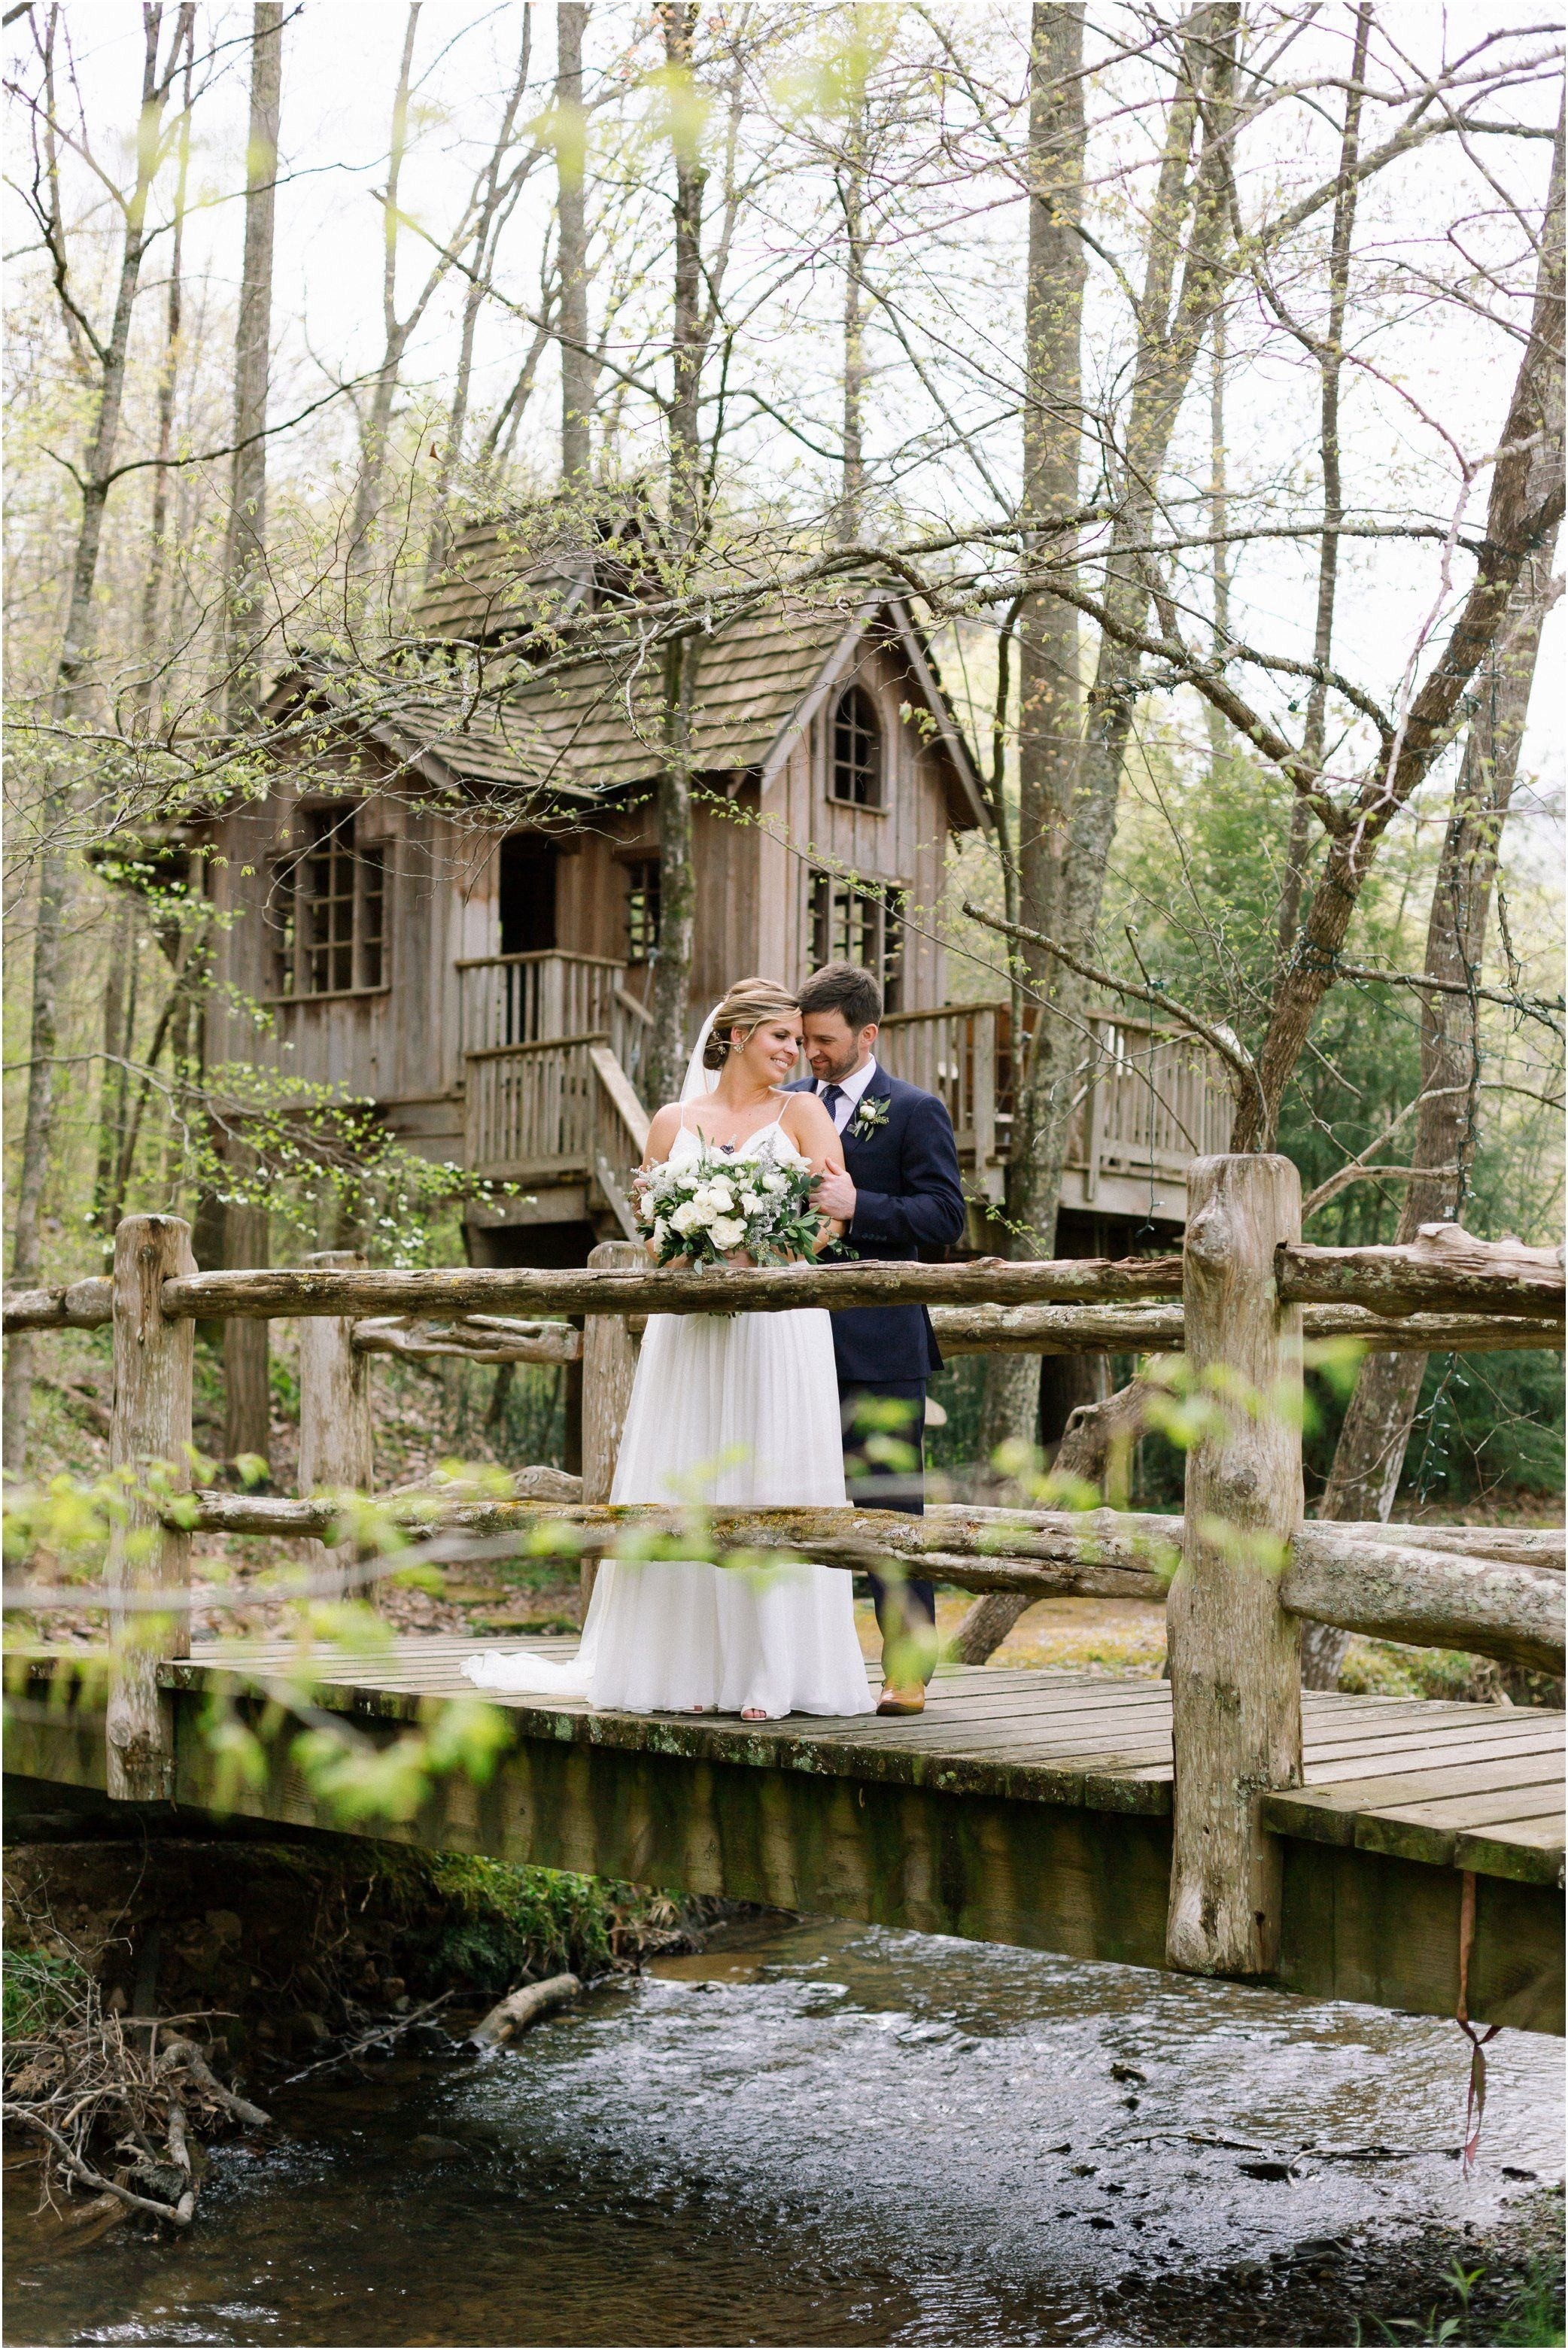 Inspiring Tree House Design Ideas For Wedding To Have 10